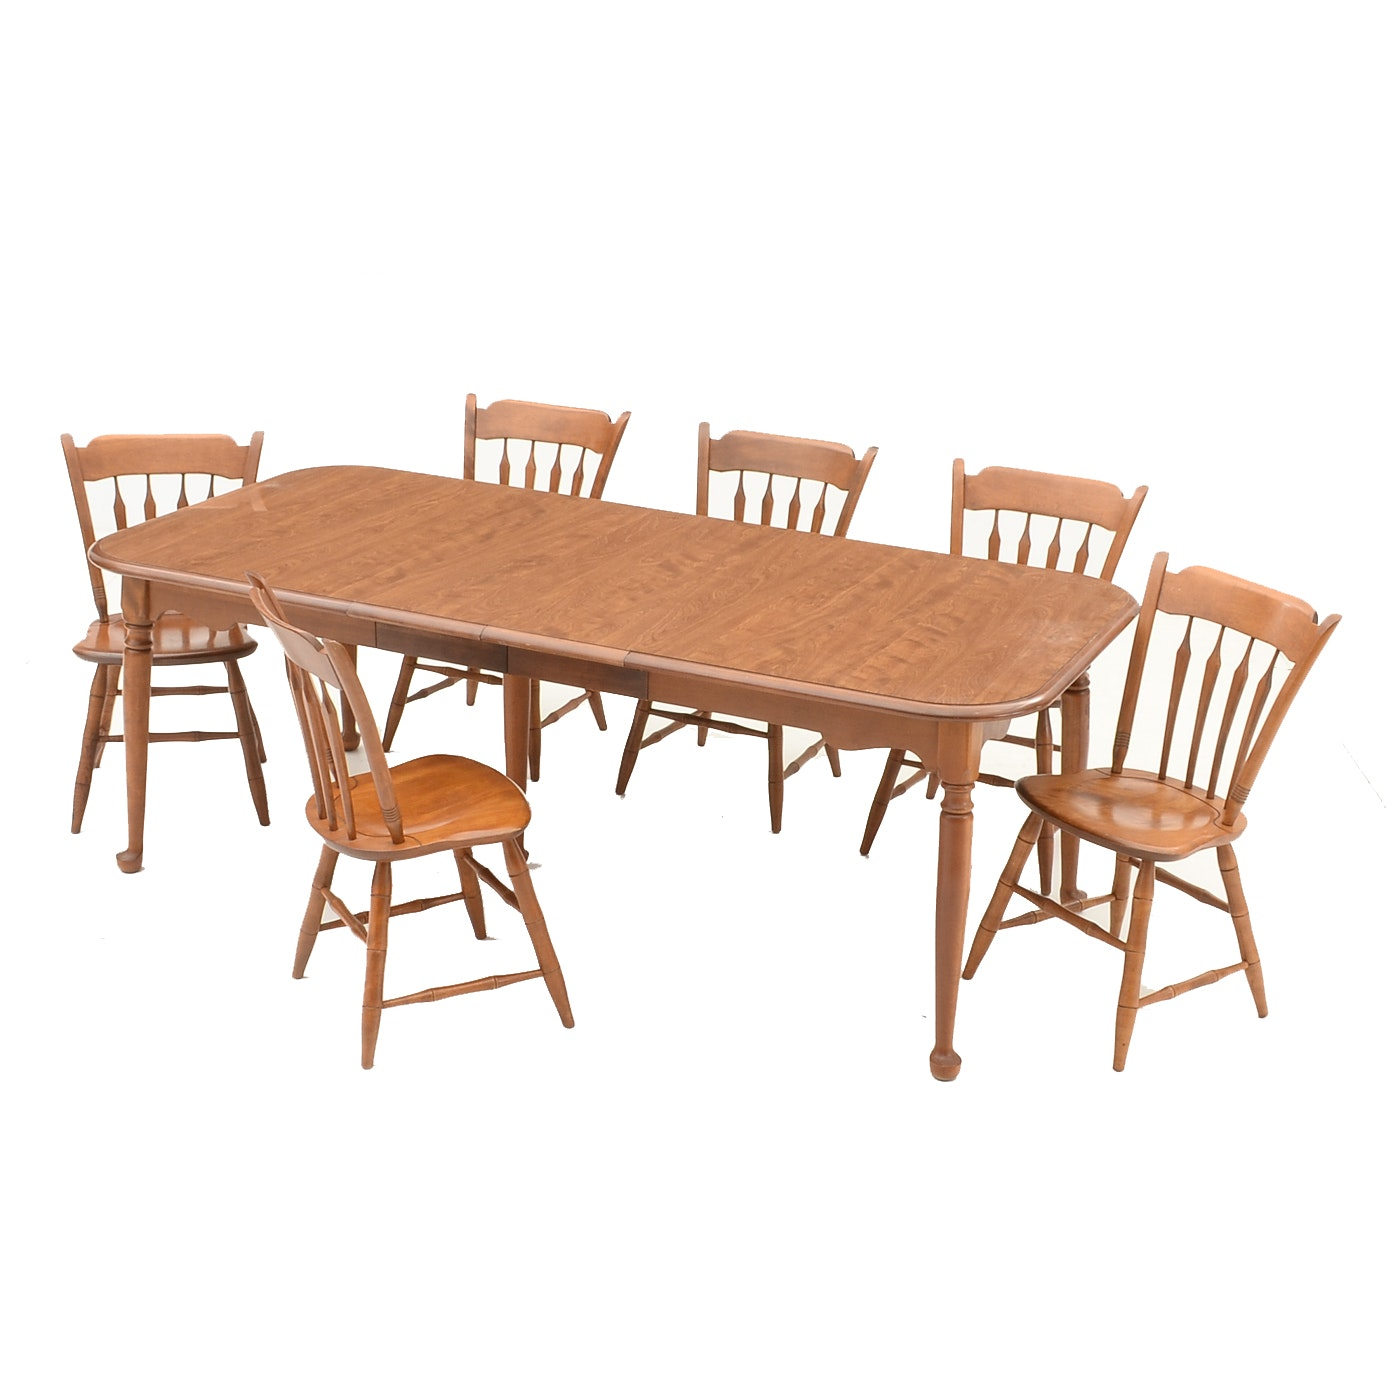 Maple Kitchen Table With Chair And Bench Ebth: Ethan Allen Maple Dining Table And Six Chairs